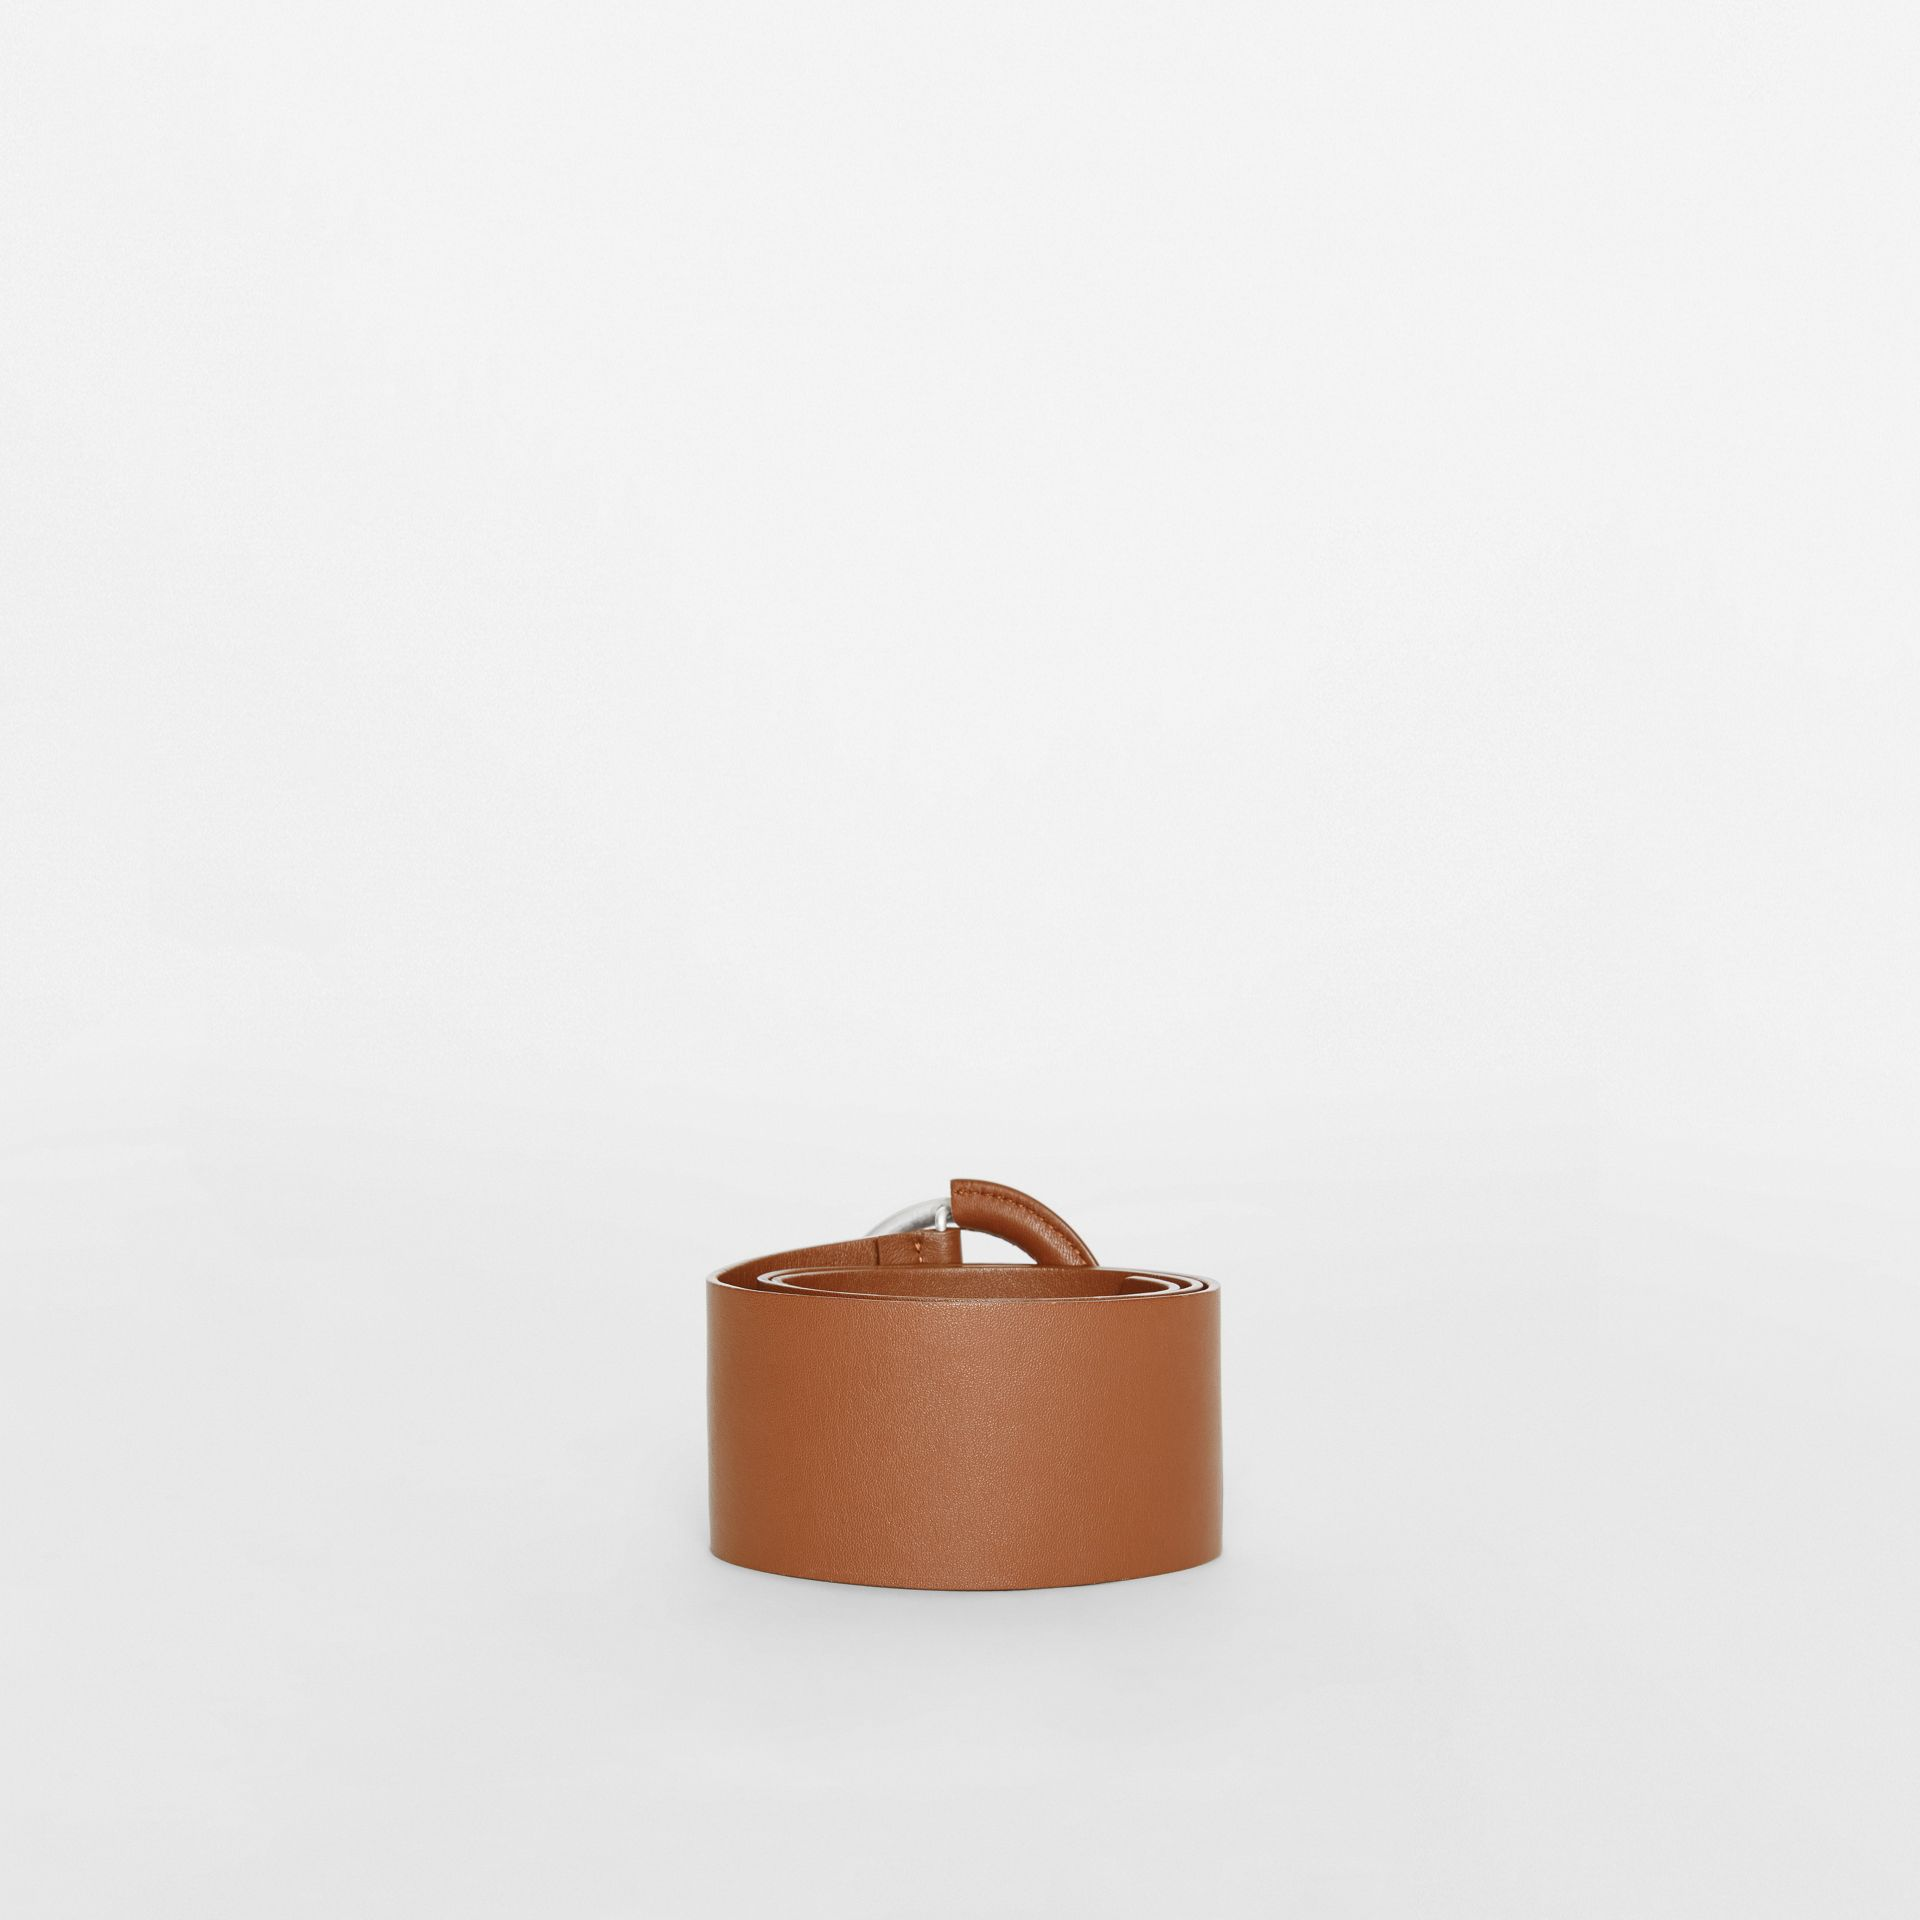 Round Buckle Leather Belt in Tan - Women | Burberry - gallery image 4